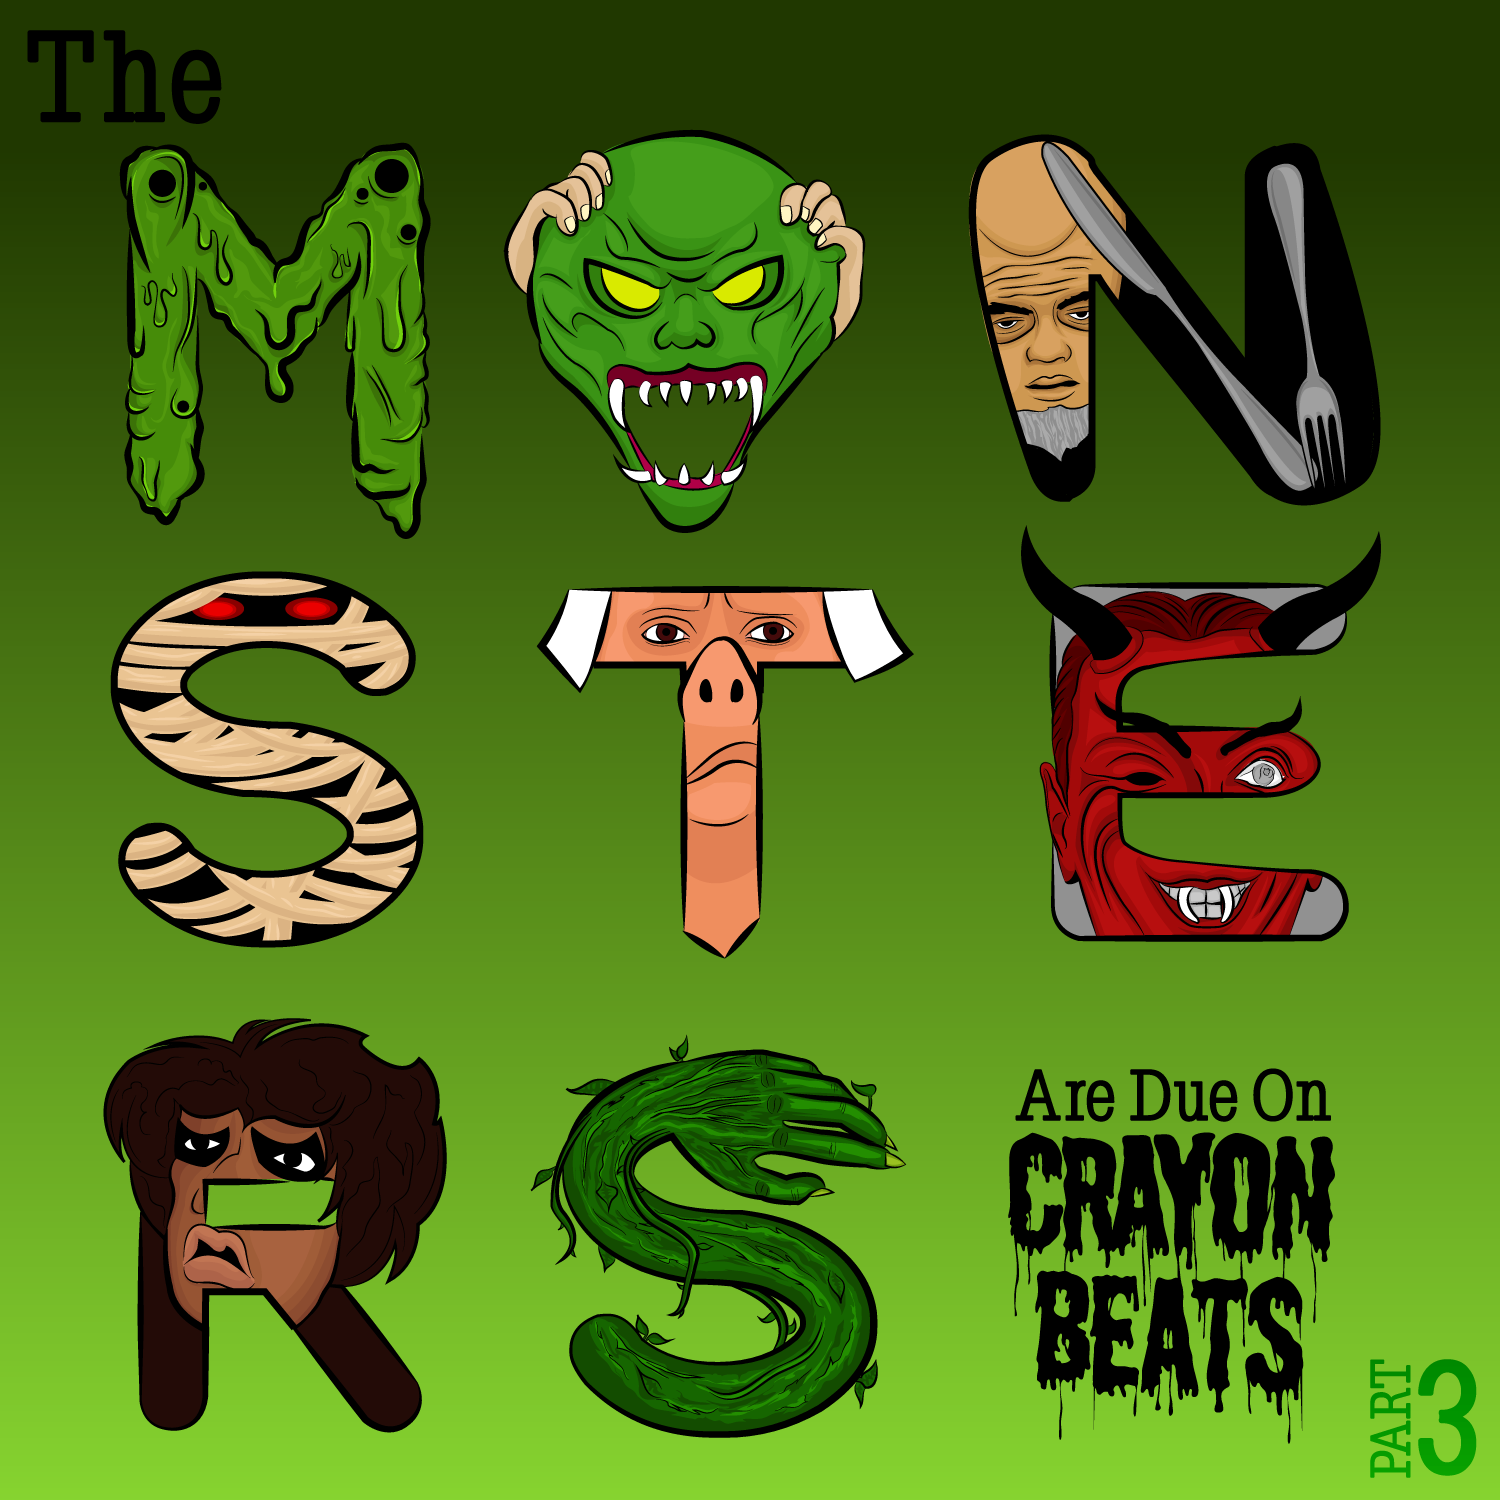 CrayonBeats compilations